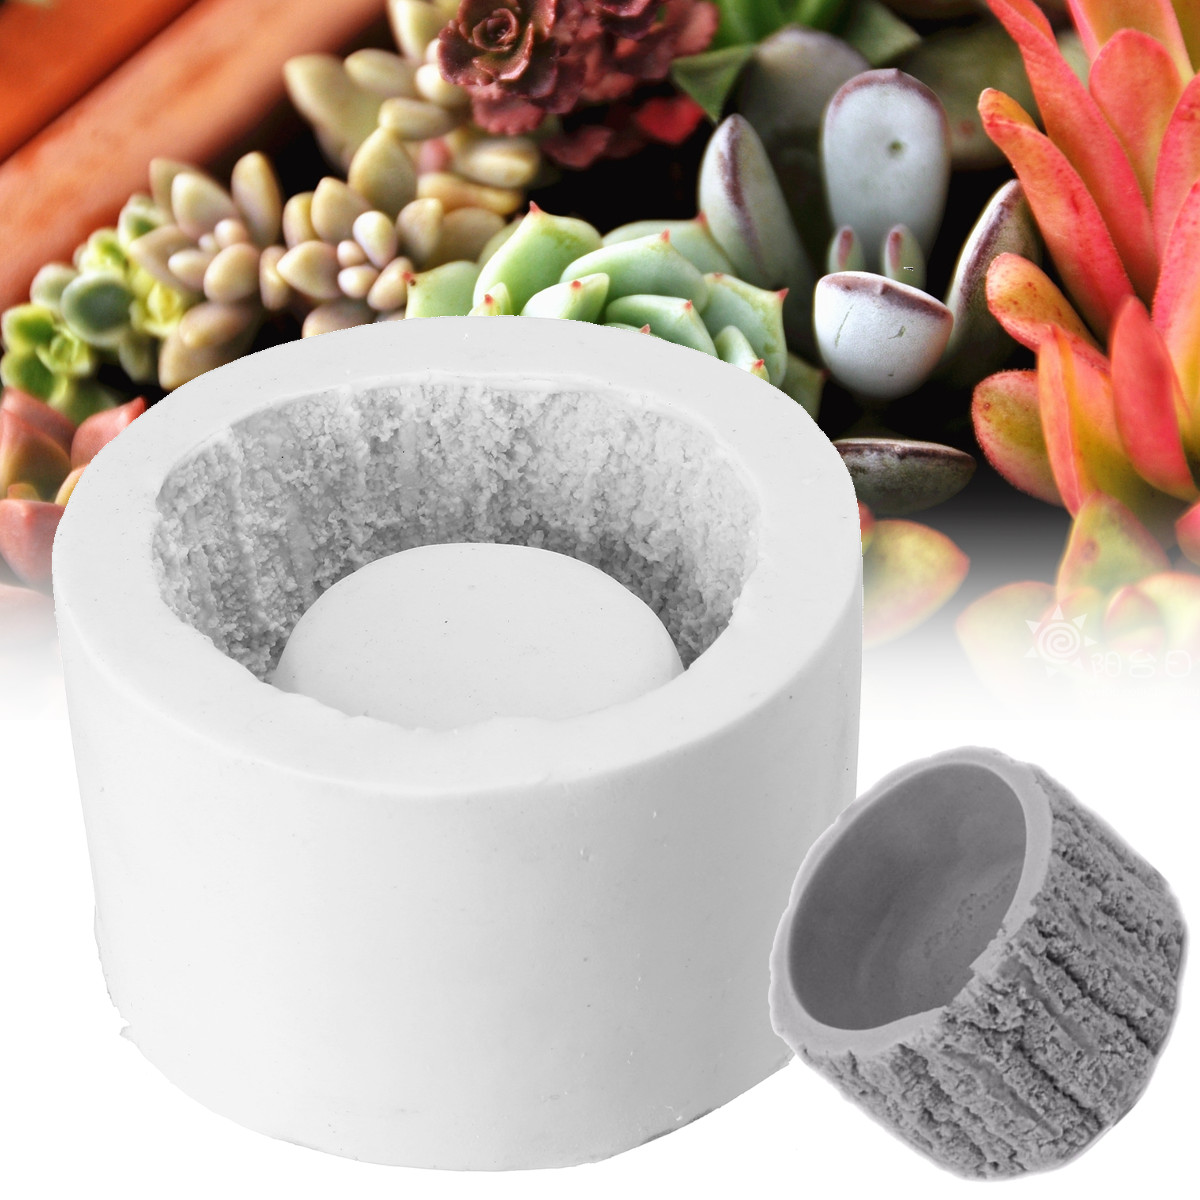 3D Concrete Planter Cactus Cement Silicone <font><b>Mold</b></font> DIY Clay Craft <font><b>Flower</b></font> Pot <font><b>Mold</b></font> Silicone Ceramic Plaster <font><b>Vase</b></font> Mould Random Color image